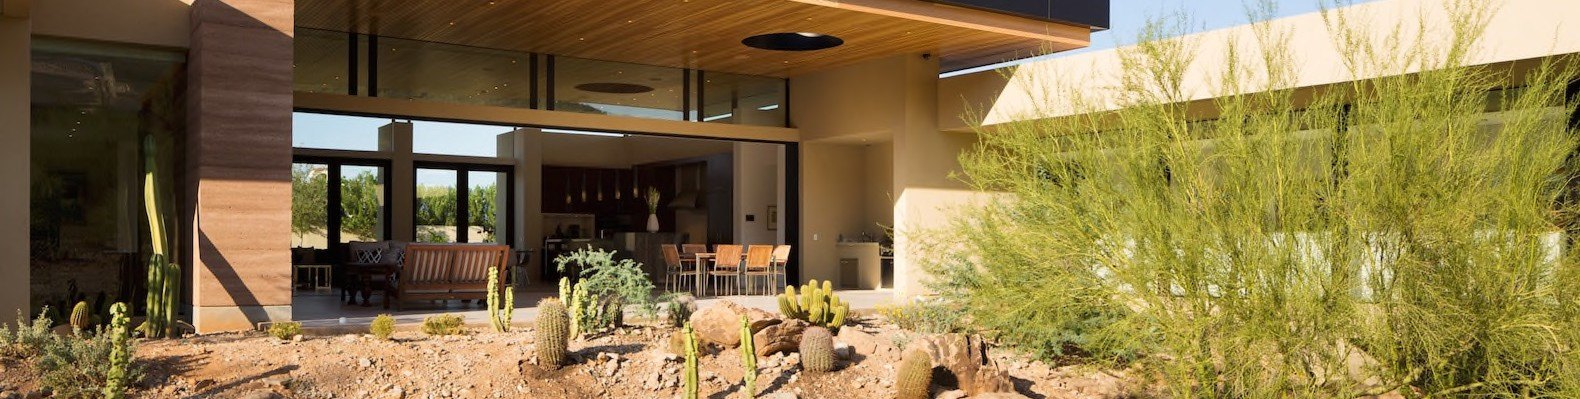 Wonderful Gorgeous Desert Home Blurs The Lines Between Indoor And Outdoor Living |  Inhabitat   Green Design, Innovation, Architecture, Green Building